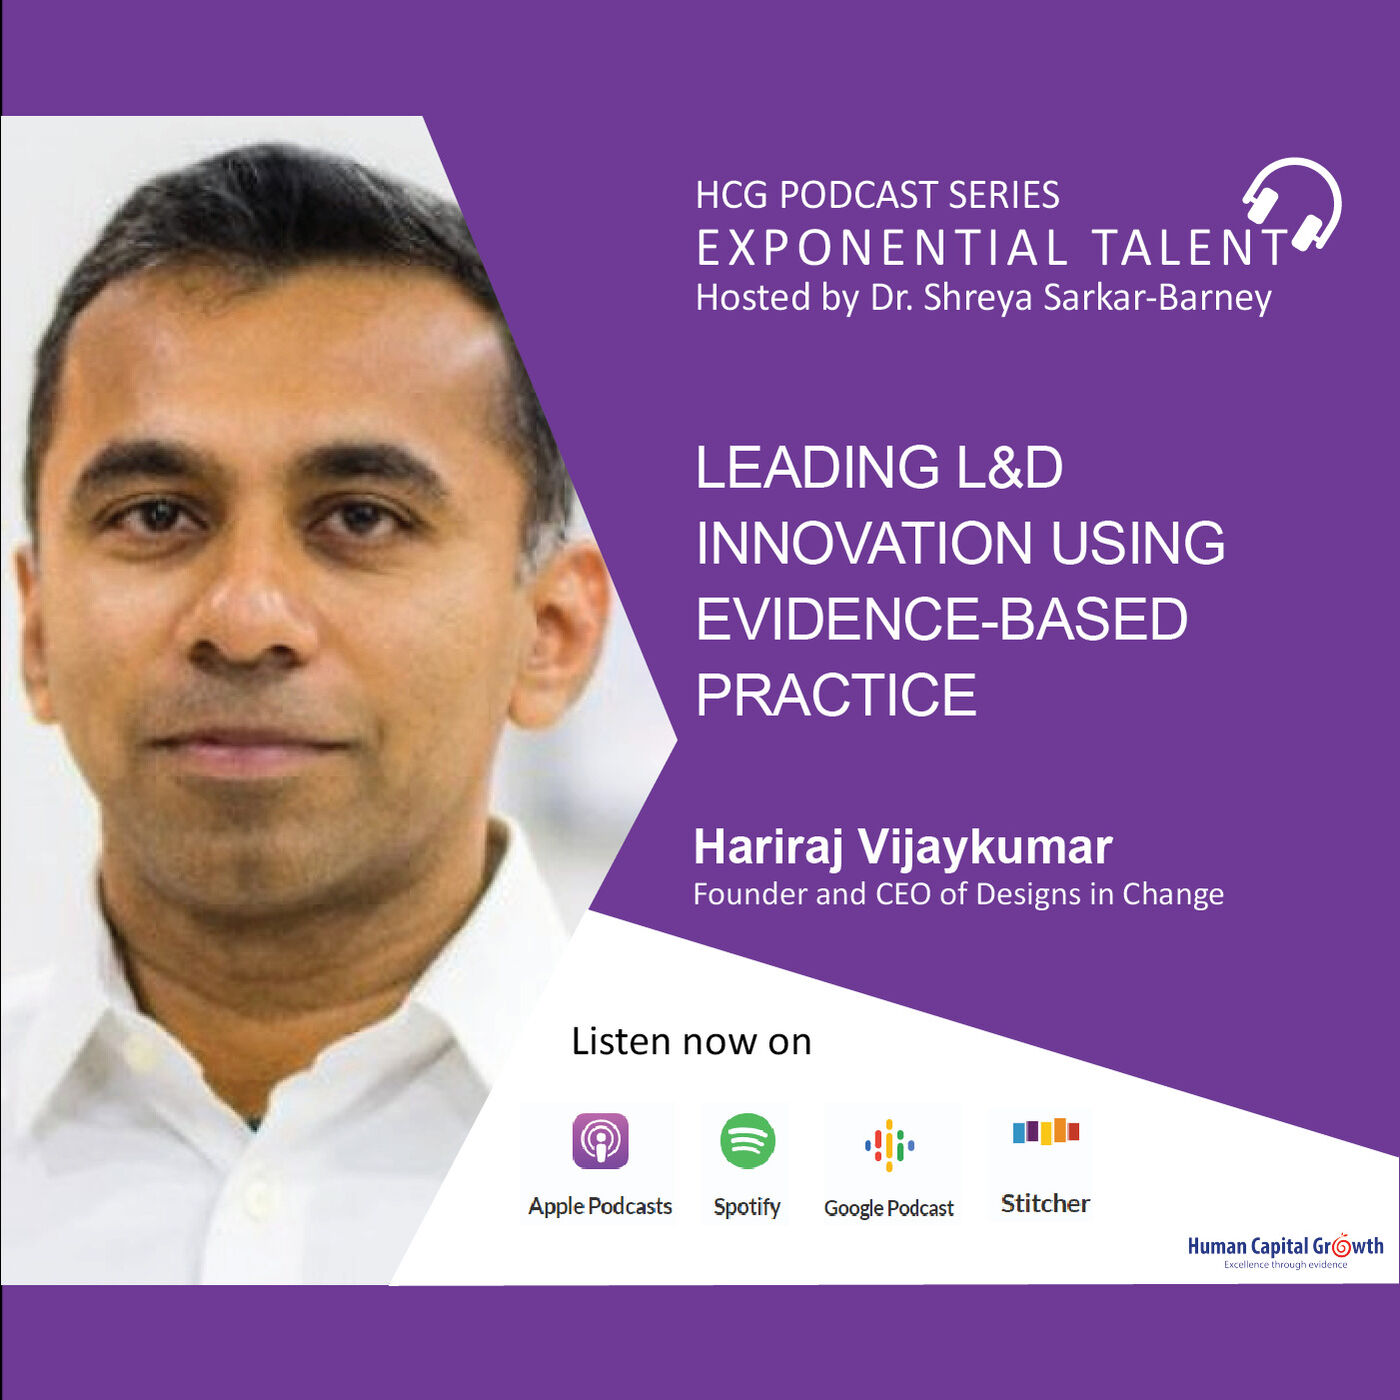 Leading L&D Innovation using Evidence-based Practice